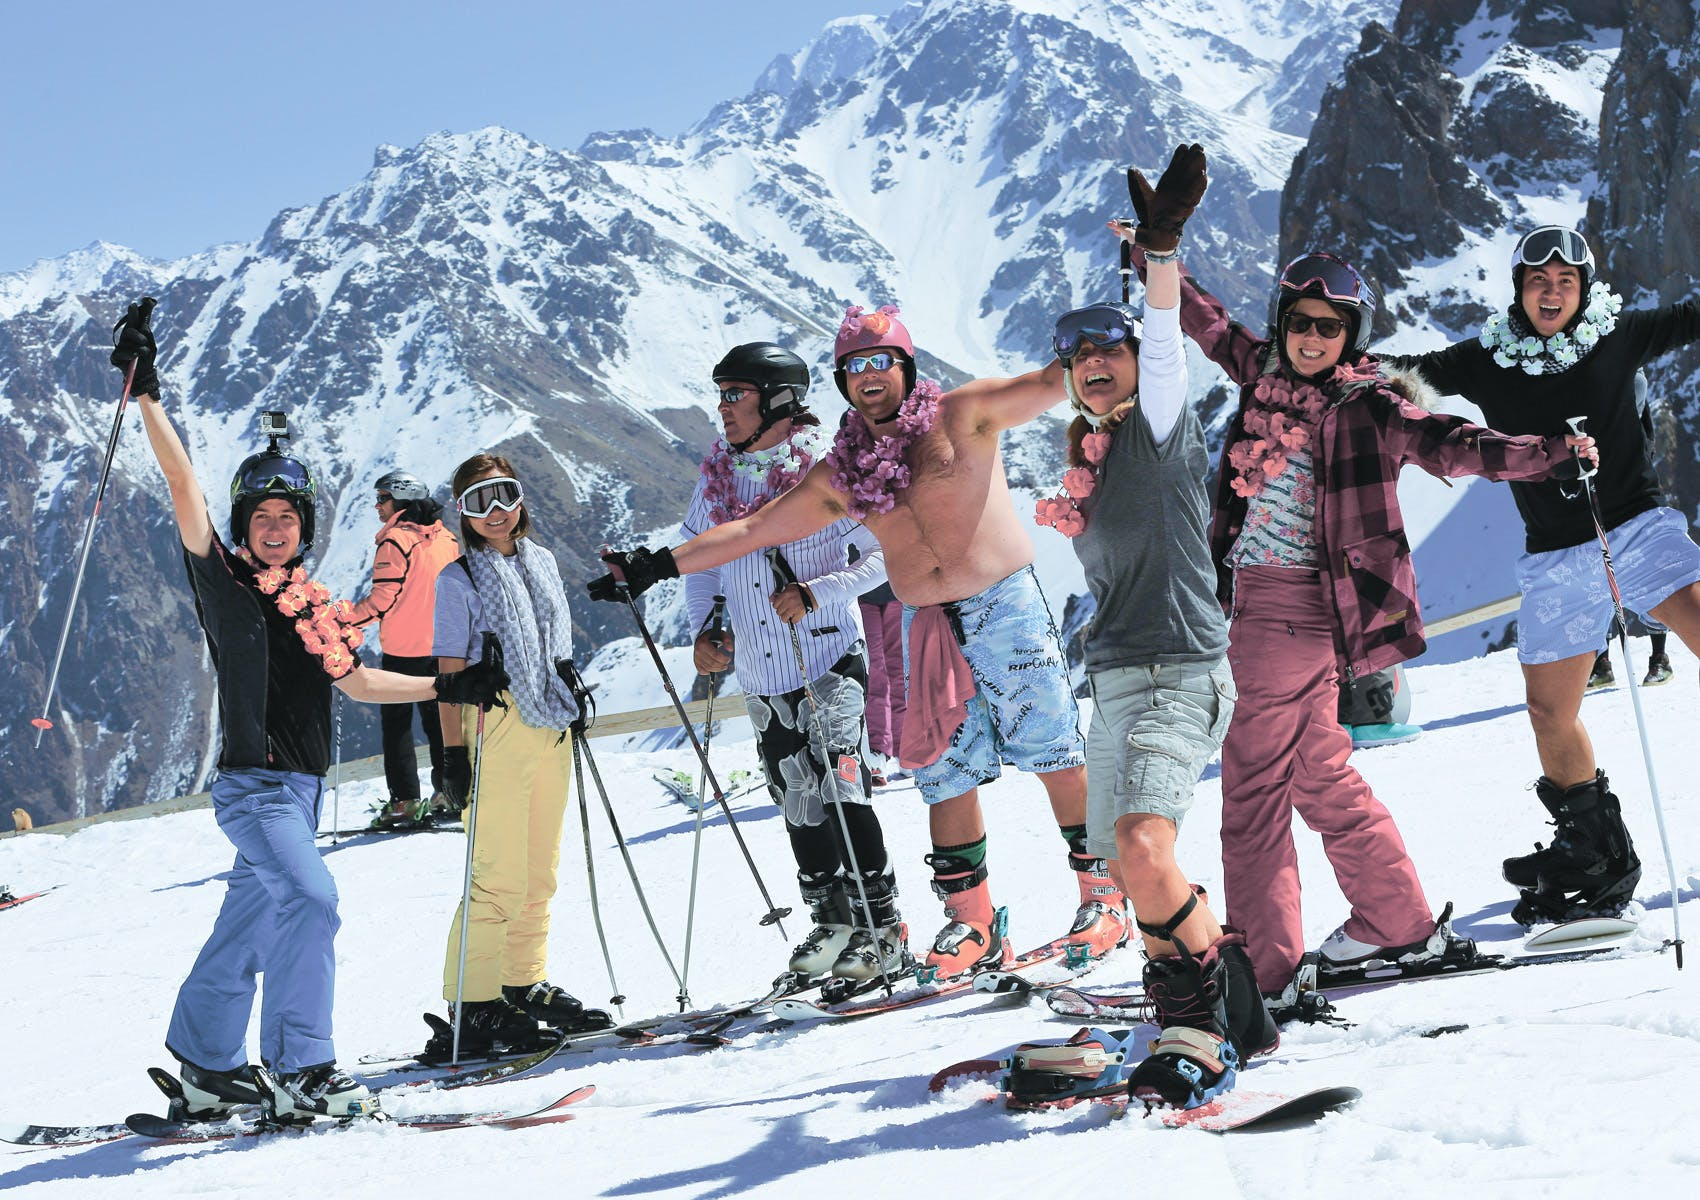 Group of People Snow Skiing